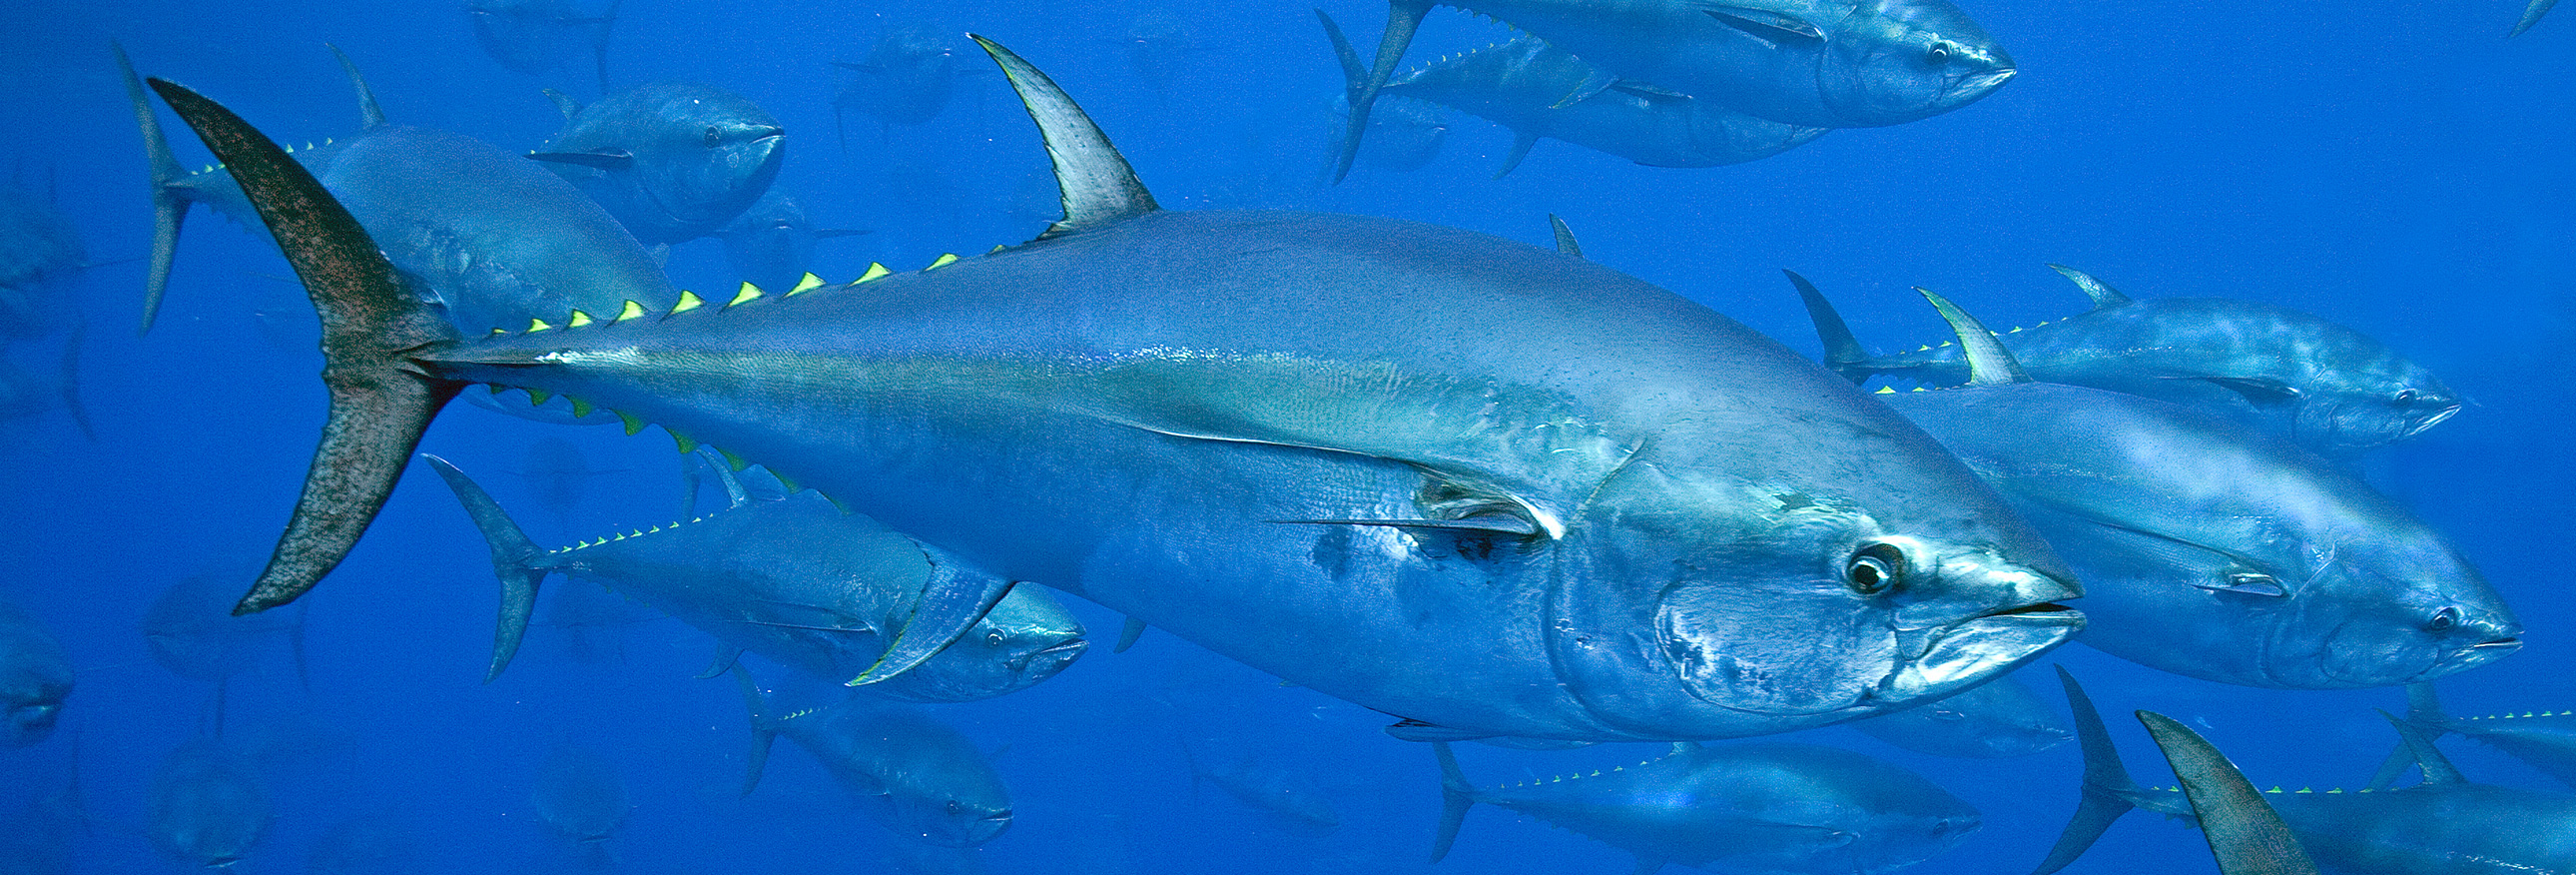 close up of tuna swimming in the ocean